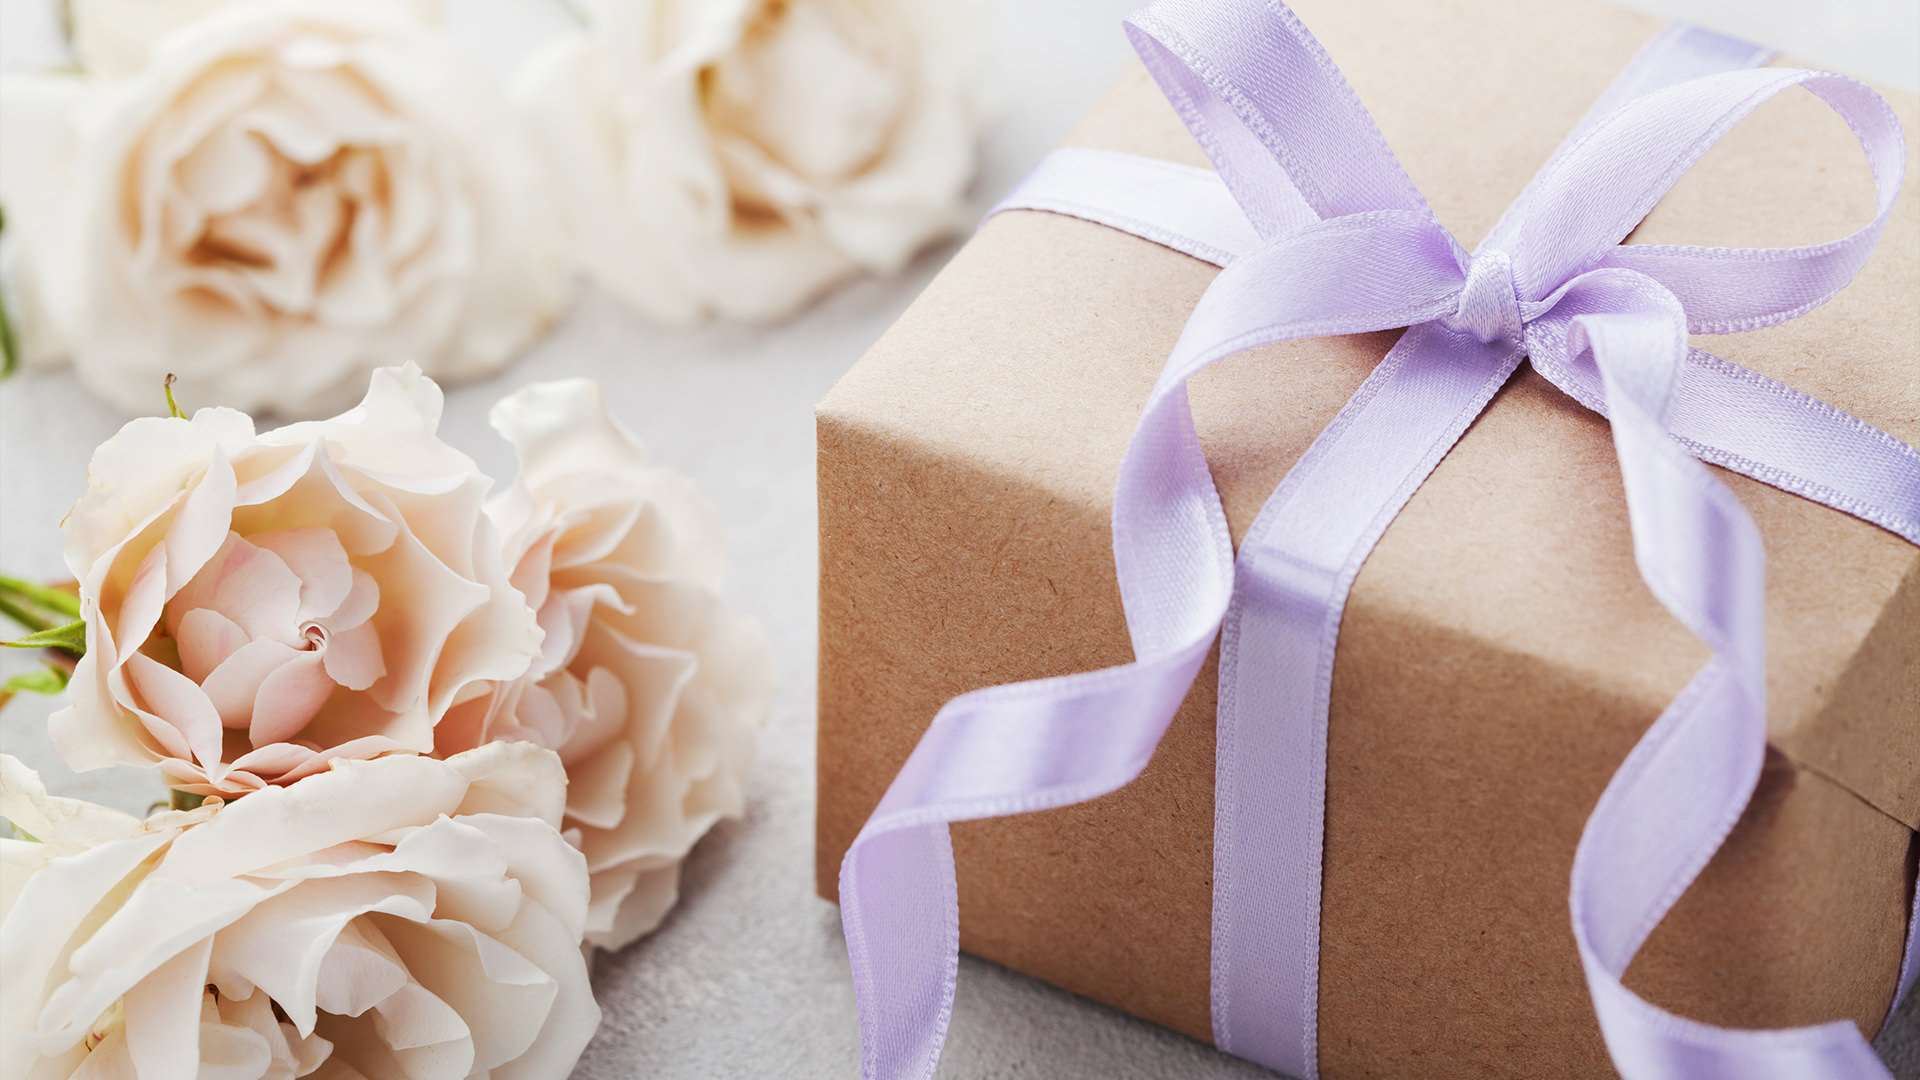 What do you buy as a wedding gift?